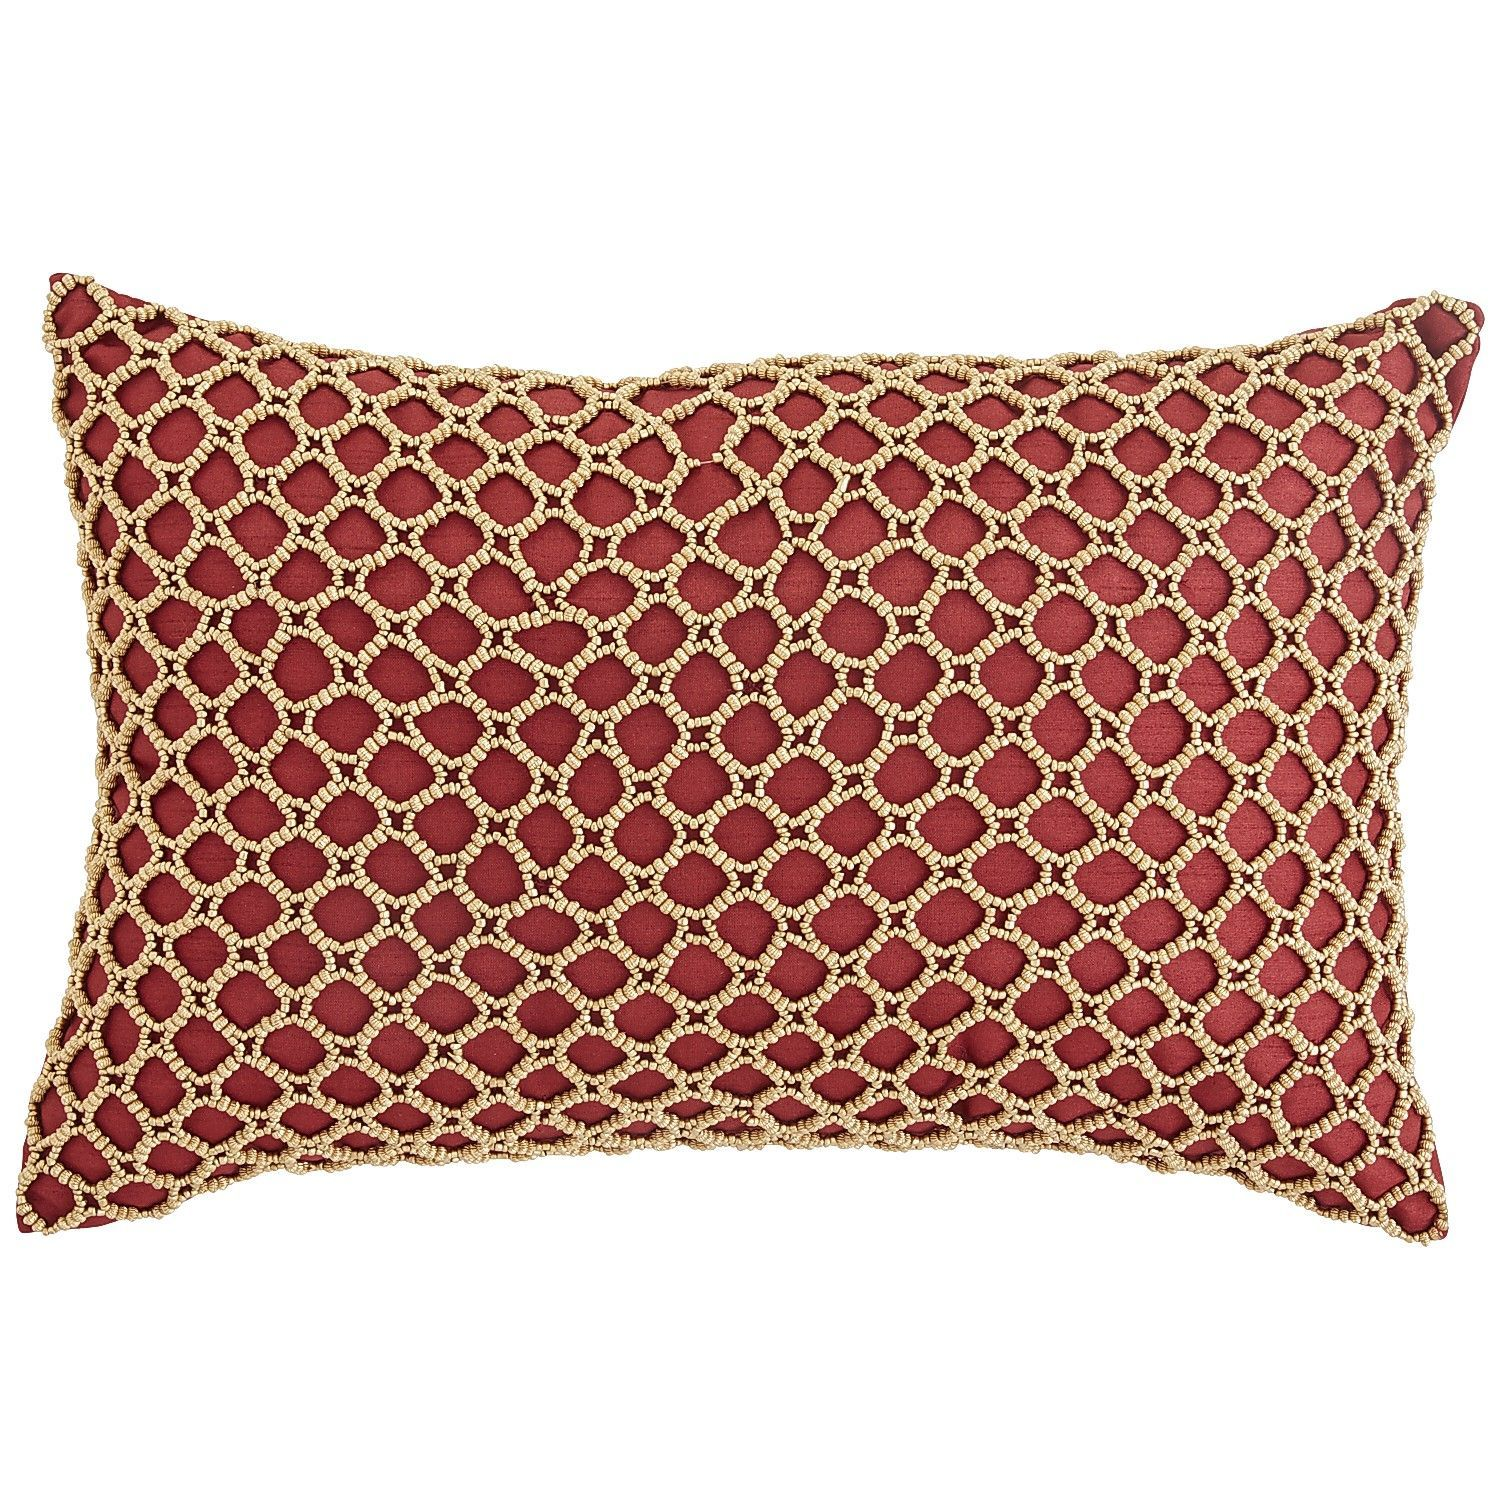 in hand clary the ireland throw burgundy tweed wine loomed bolt products pillows citizenry pillow